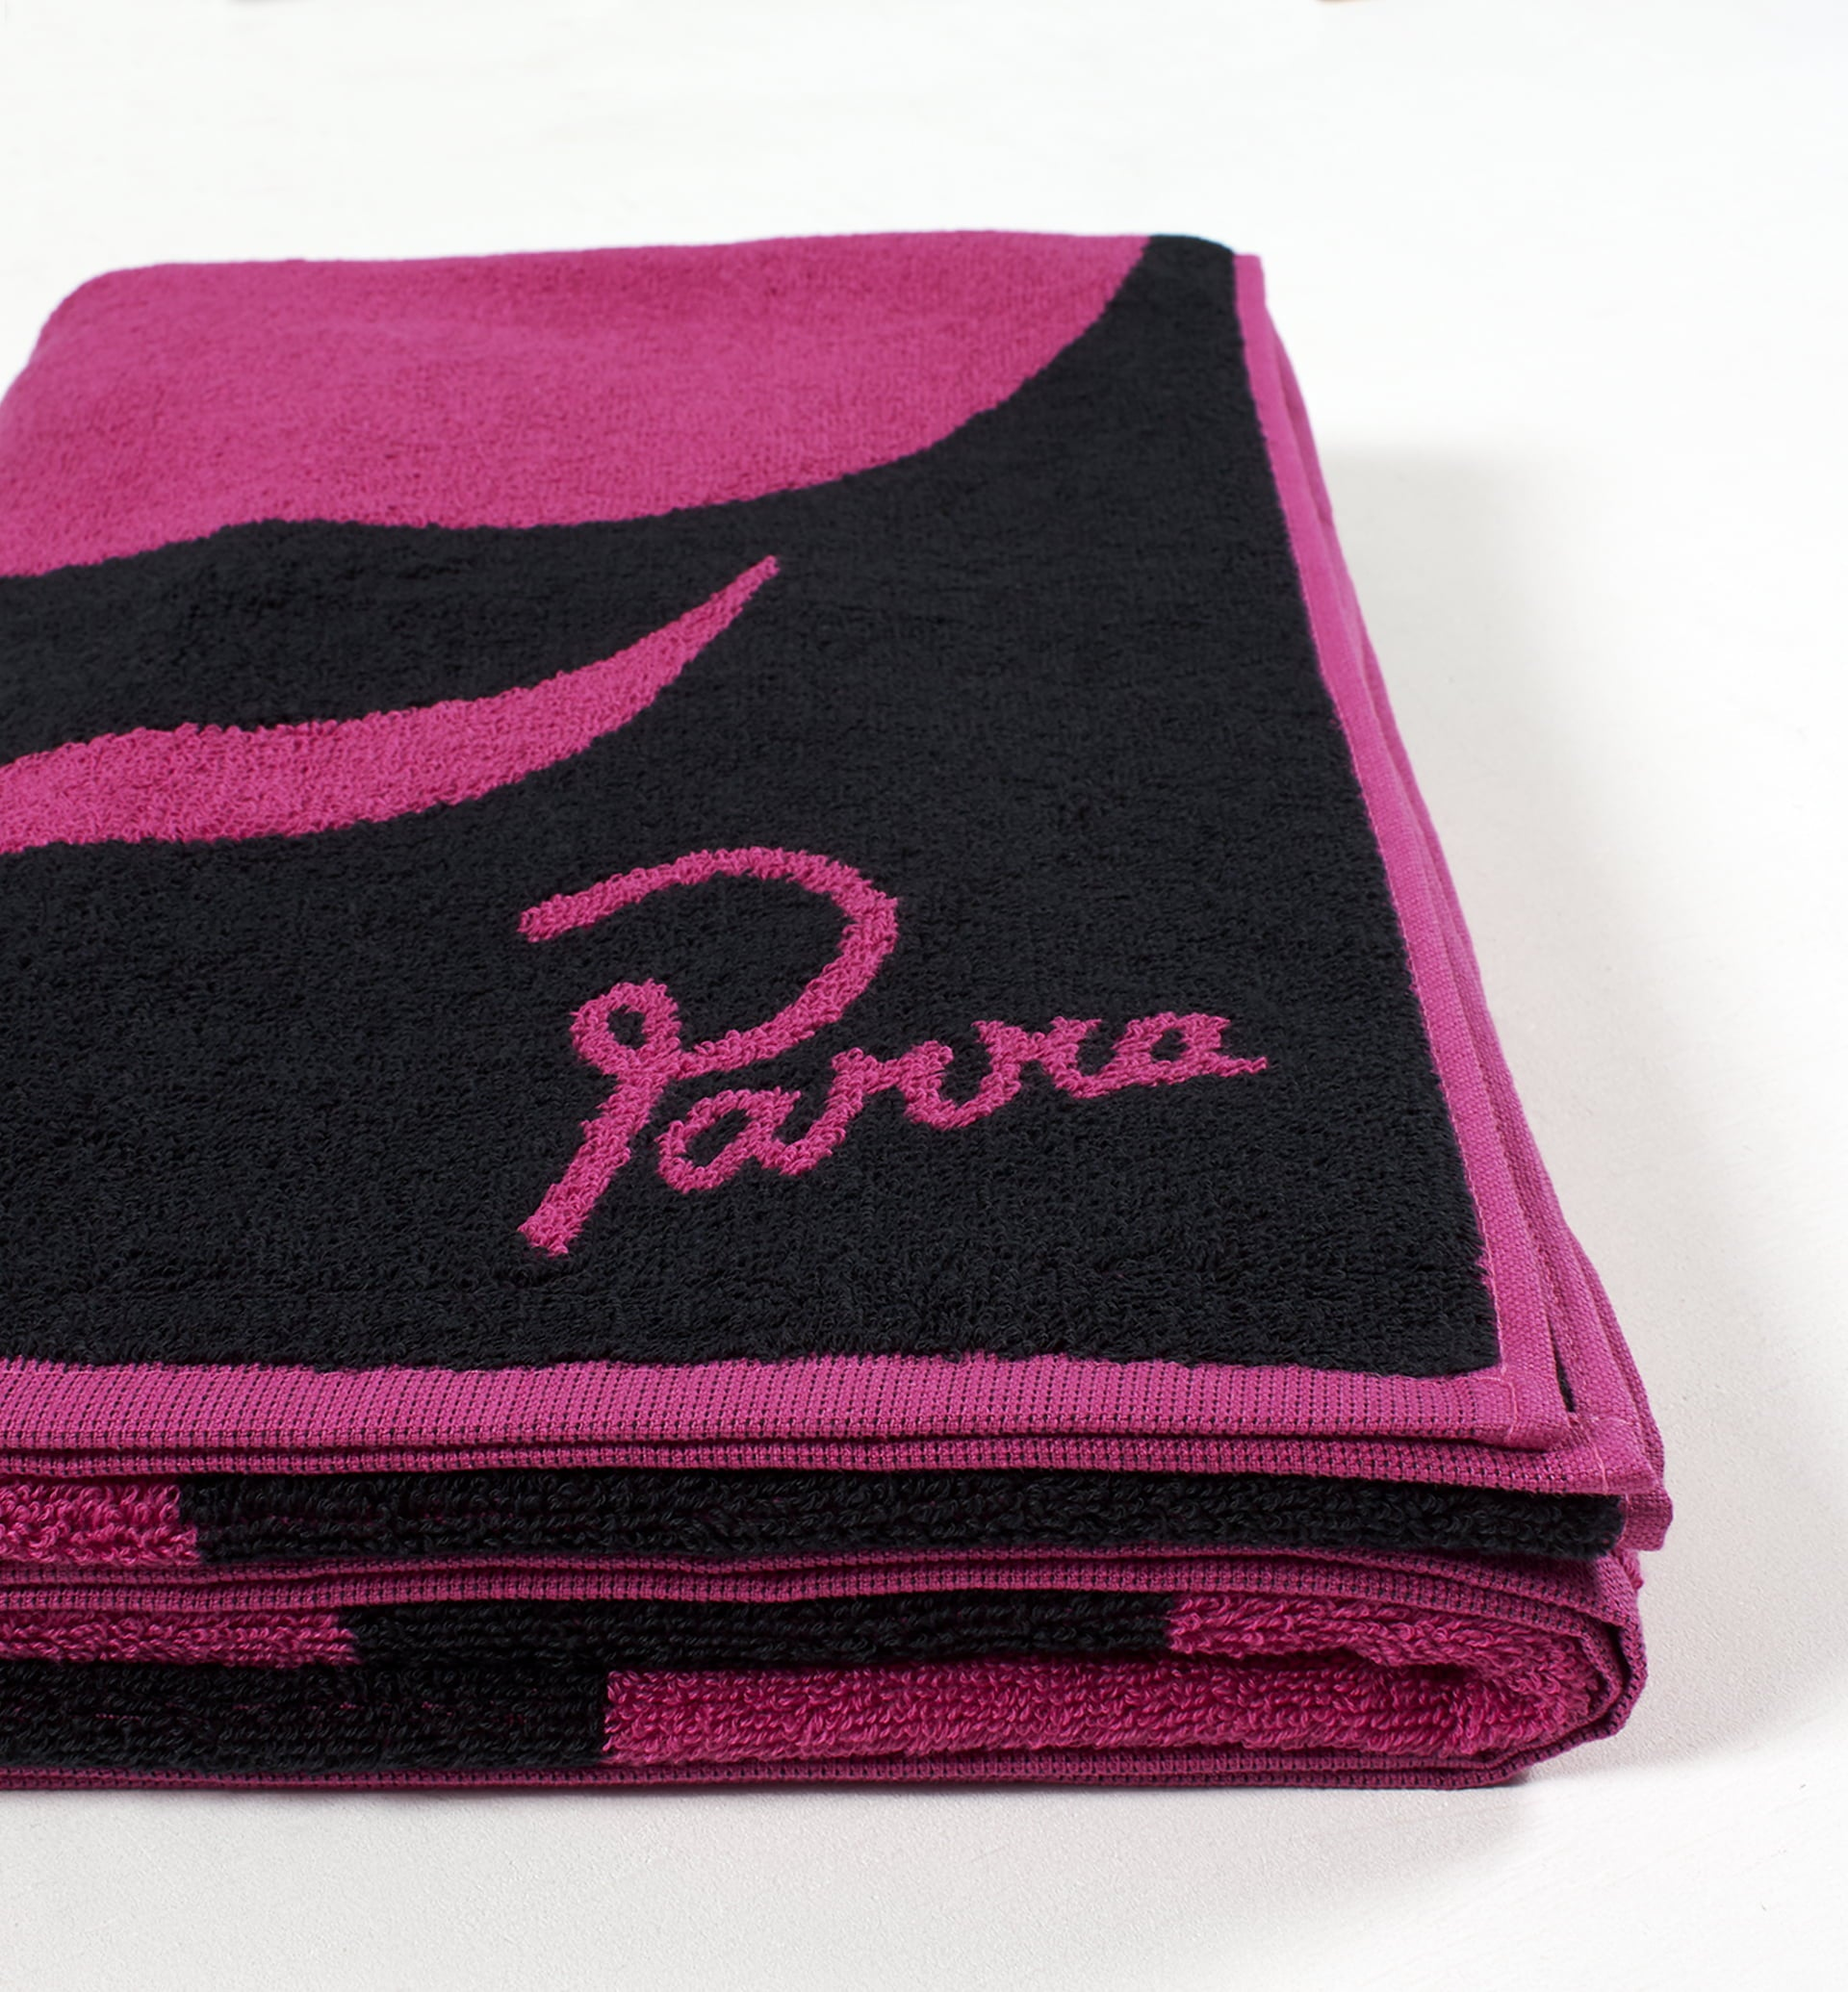 Parra - a little pressure beach towel